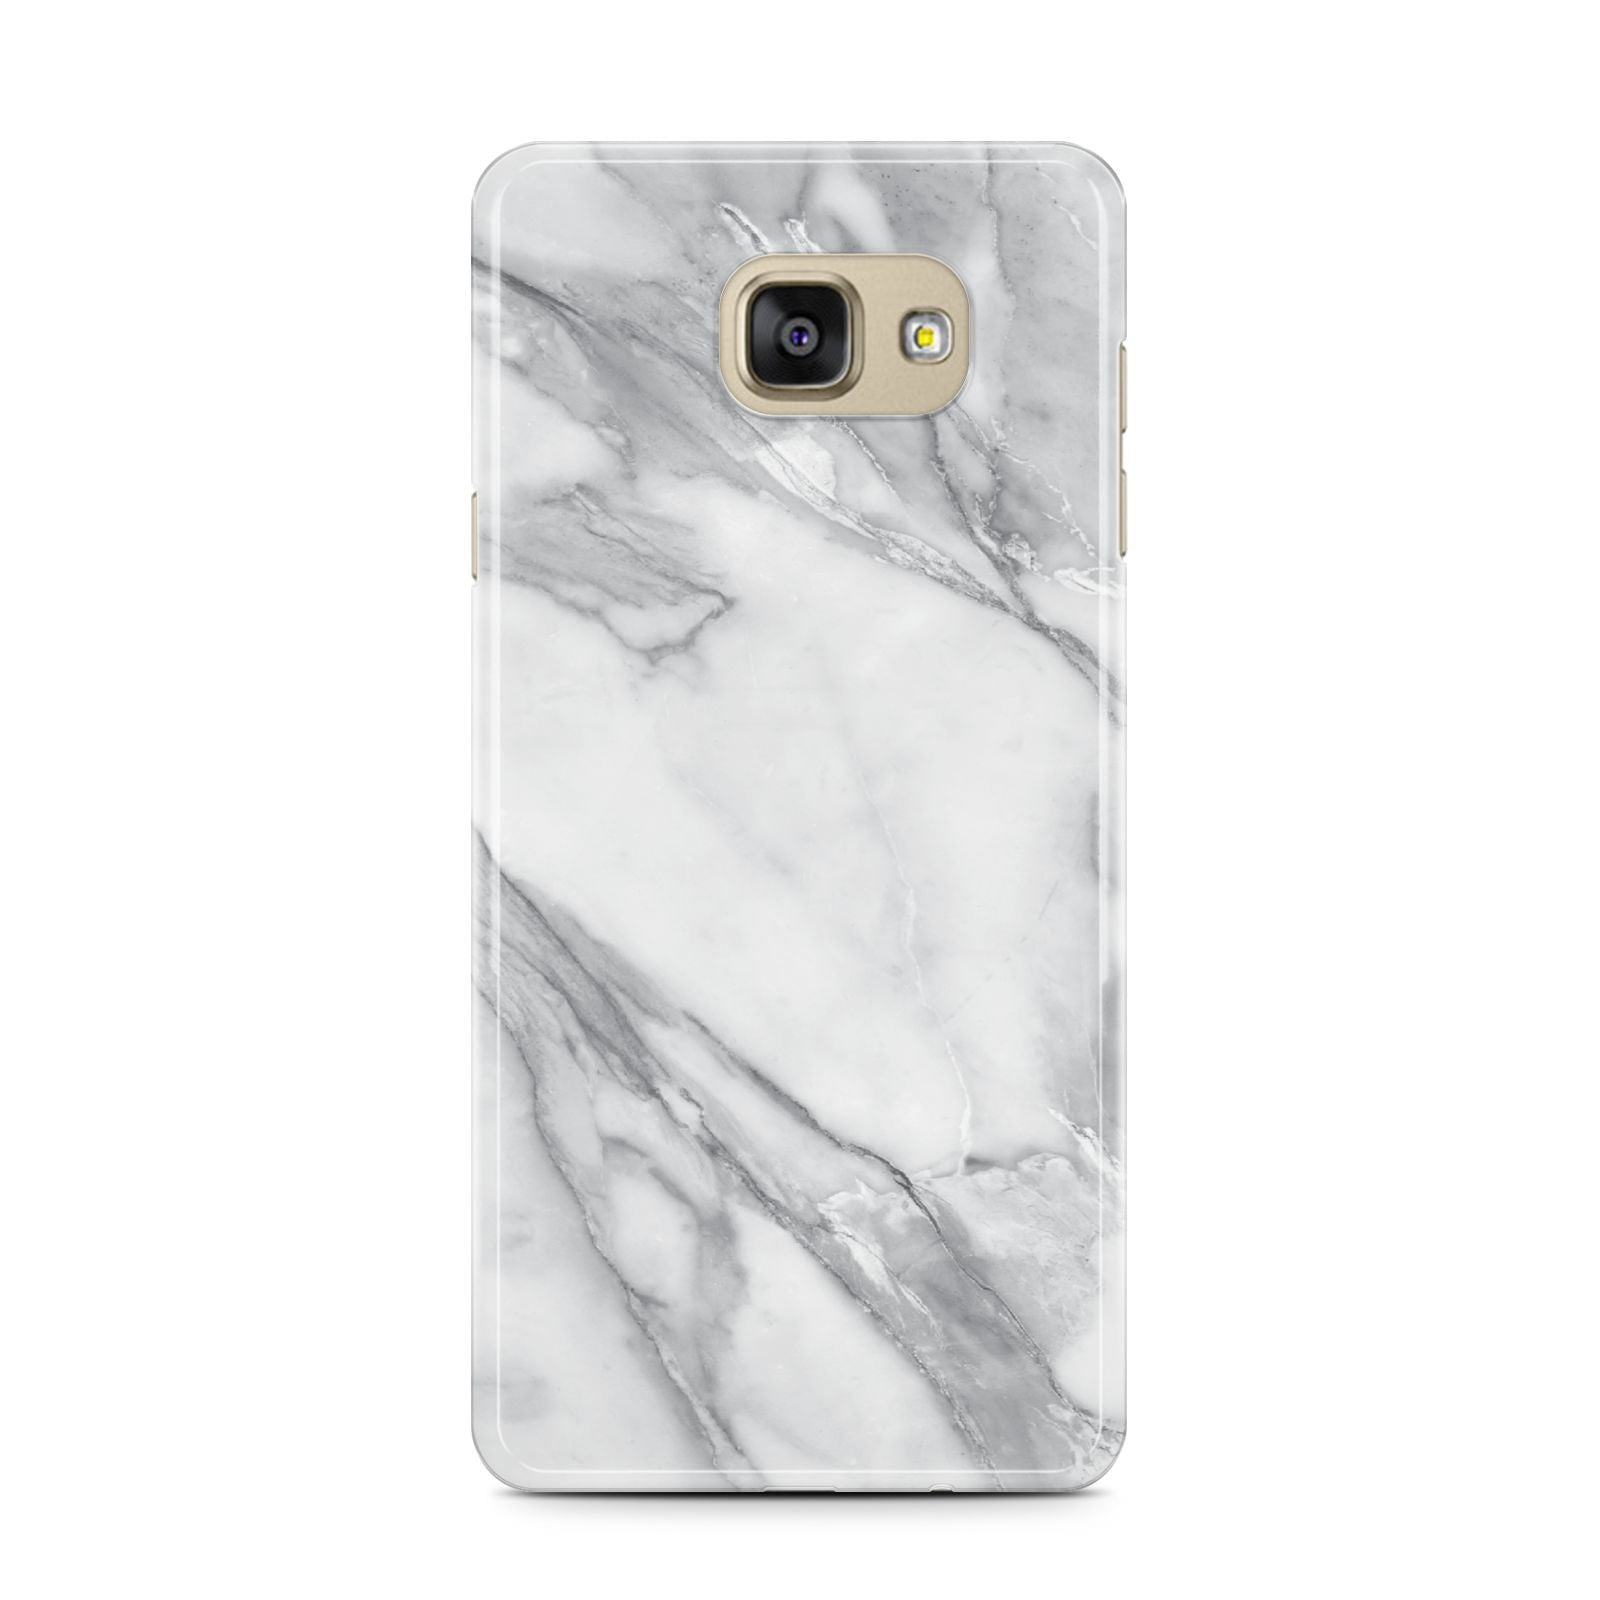 Faux Marble Effect White Grey Samsung Galaxy A7 2016 Case on gold phone